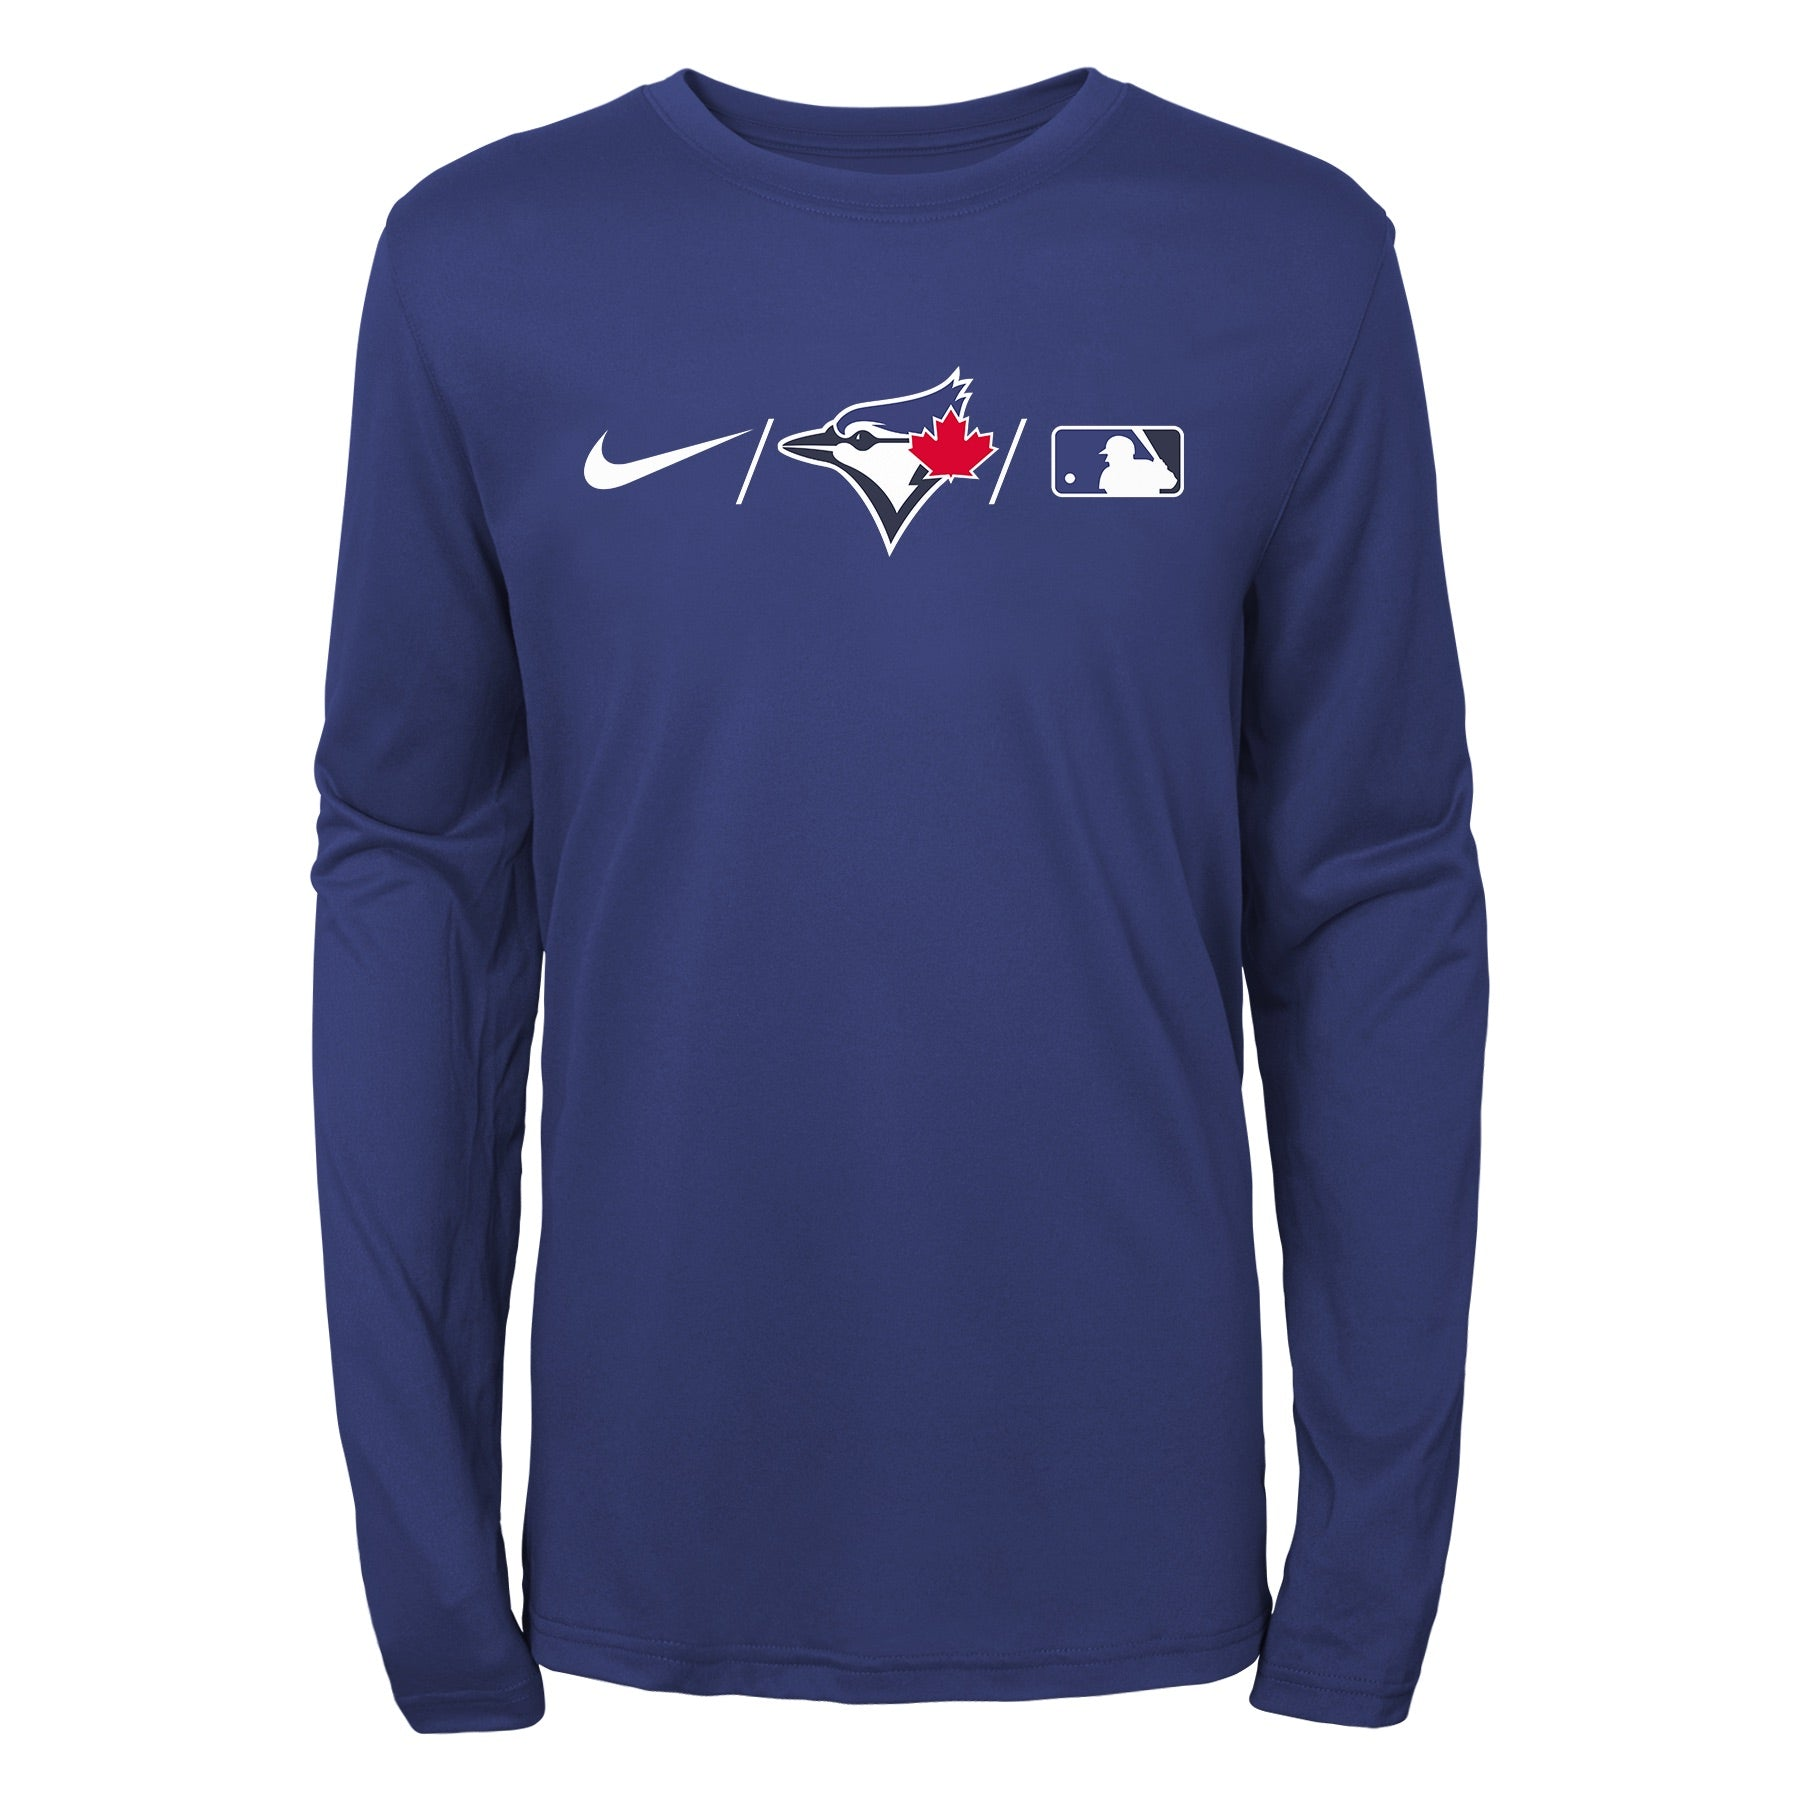 Youth Toronto Blue Jays Nike Royal Authentic Collection Team Legend Performance - Long Sleeve T-Shirt